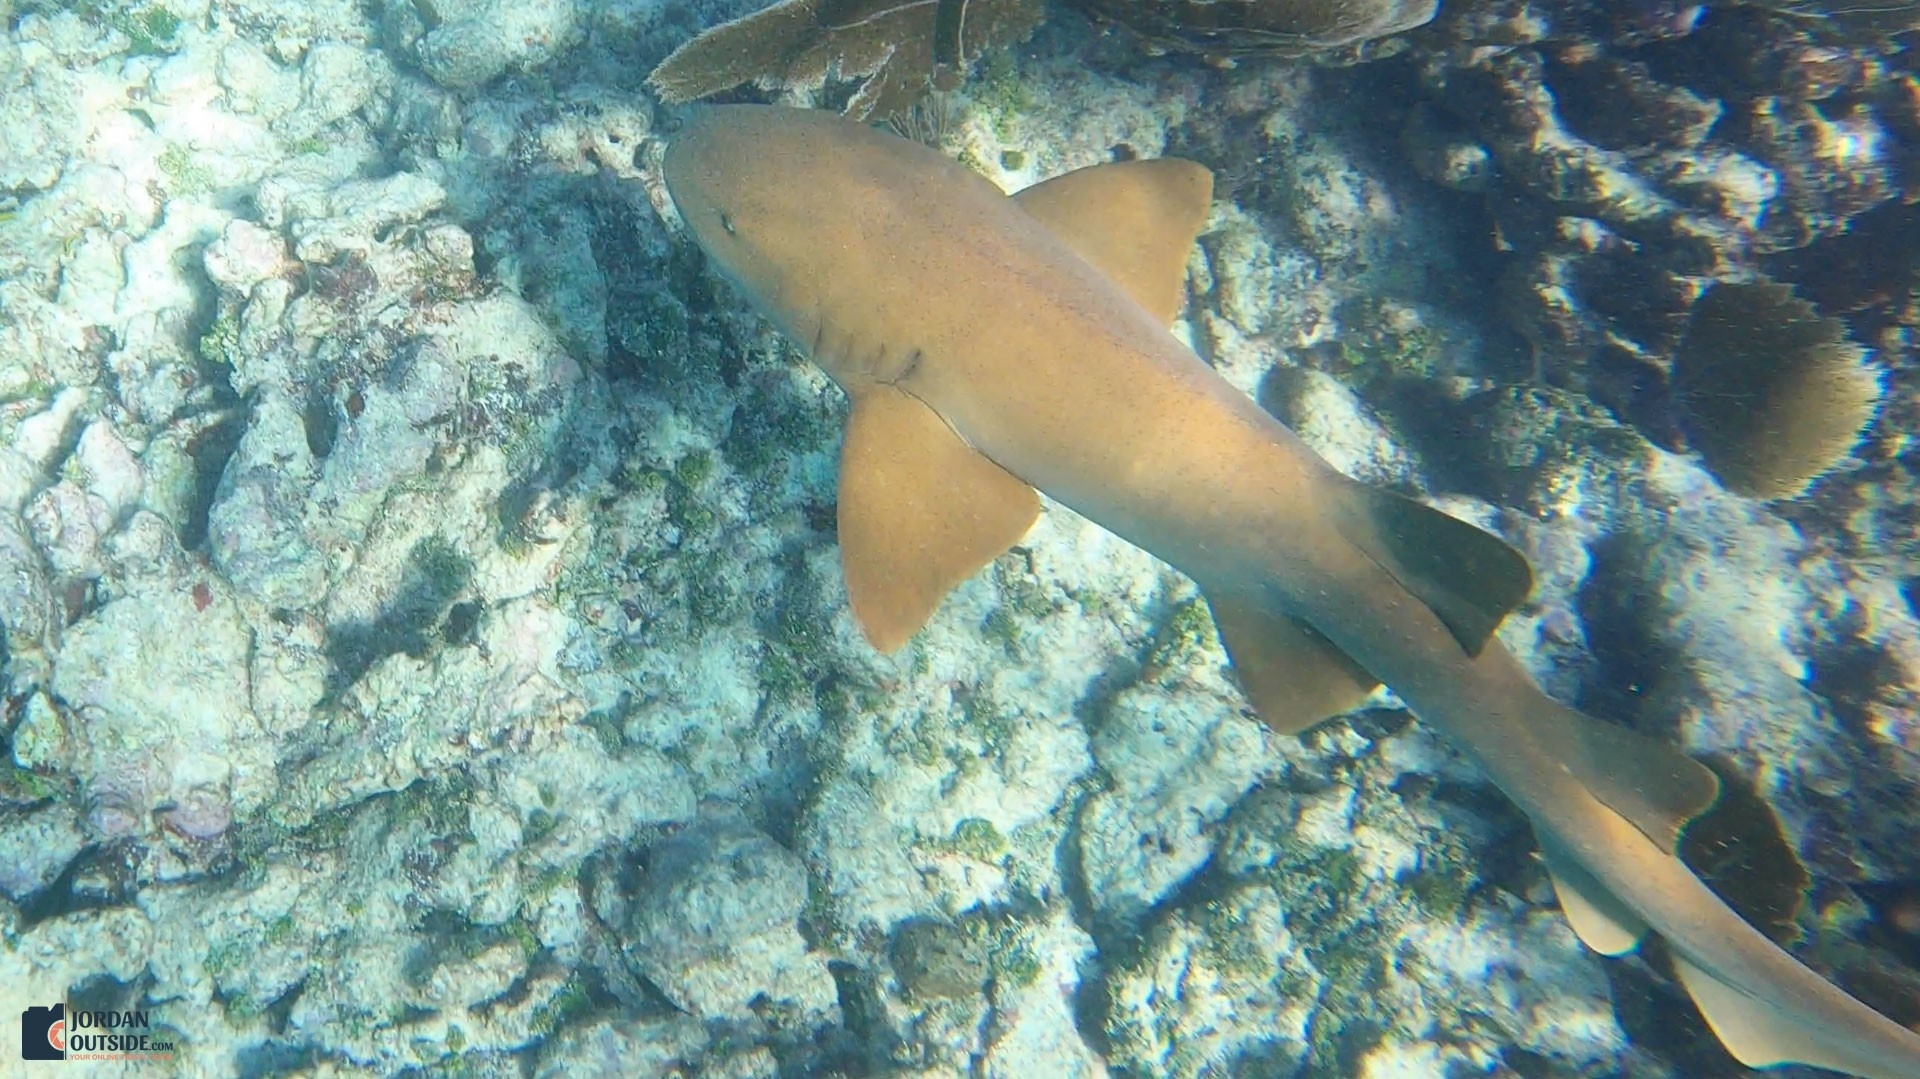 Reef Shark at the Grecian Rocks Coral Reef